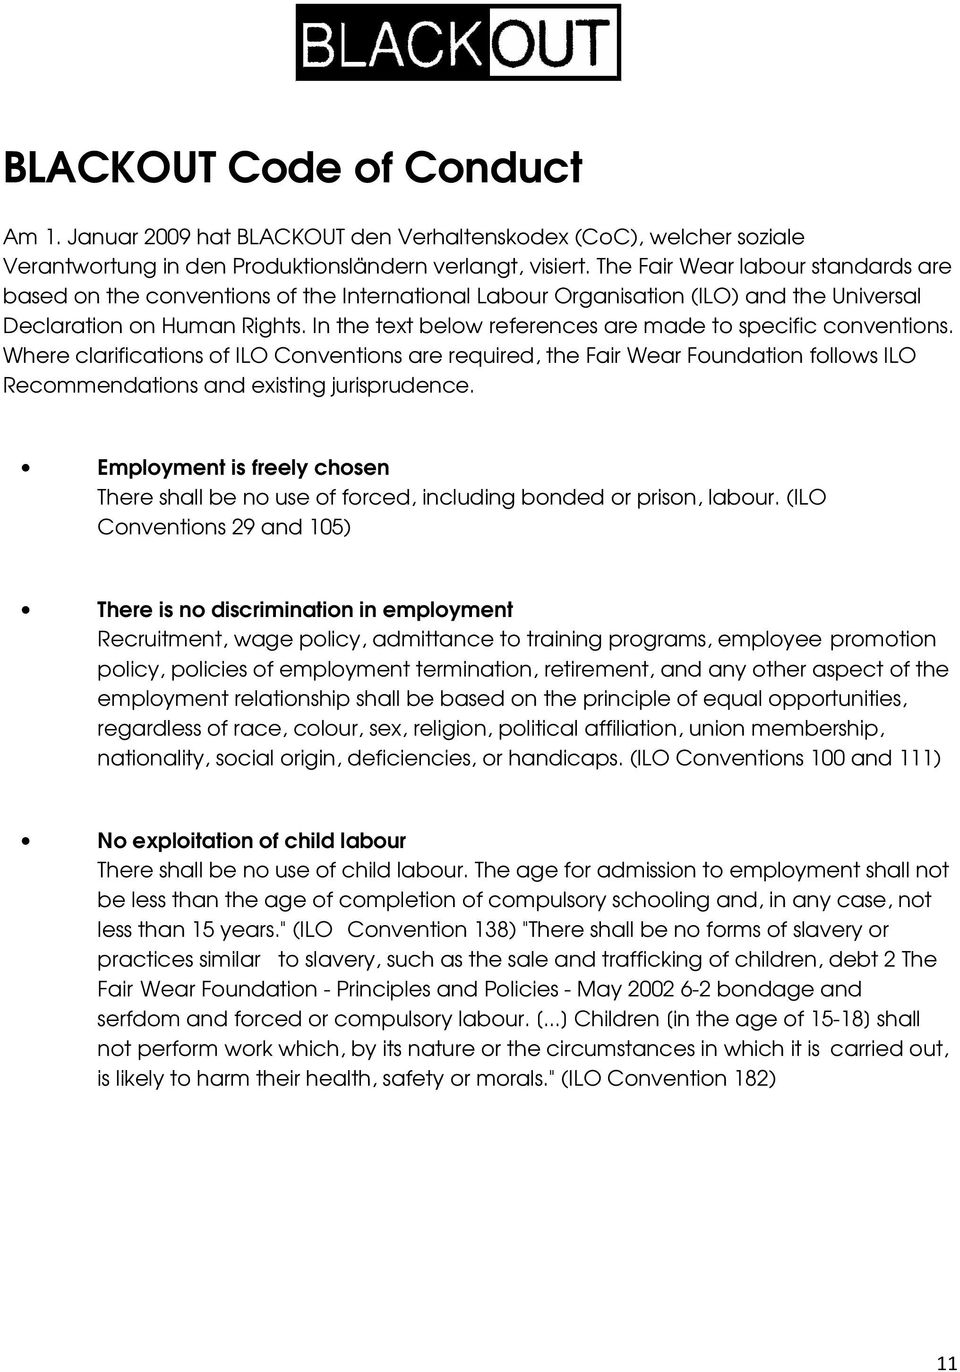 In the text below references are made to specific conventions. Where clarifications of ILO Conventions are required, the Fair Wear Foundation follows ILO Recommendations and existing jurisprudence.